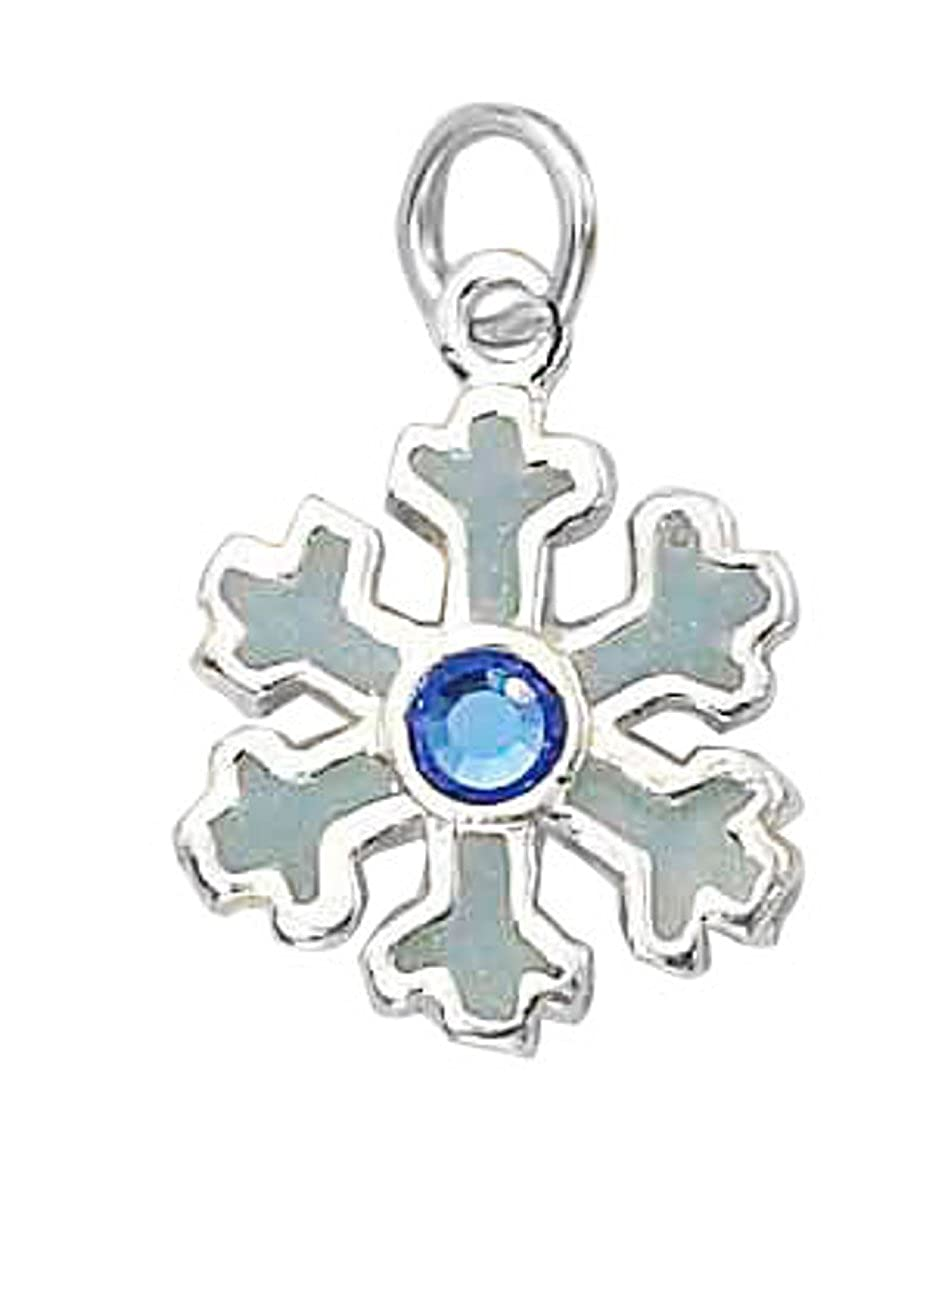 Sterling Silver 7 4.5mm Charm Bracelet With Attached Whitish Snowflake Charm Blue Crystal